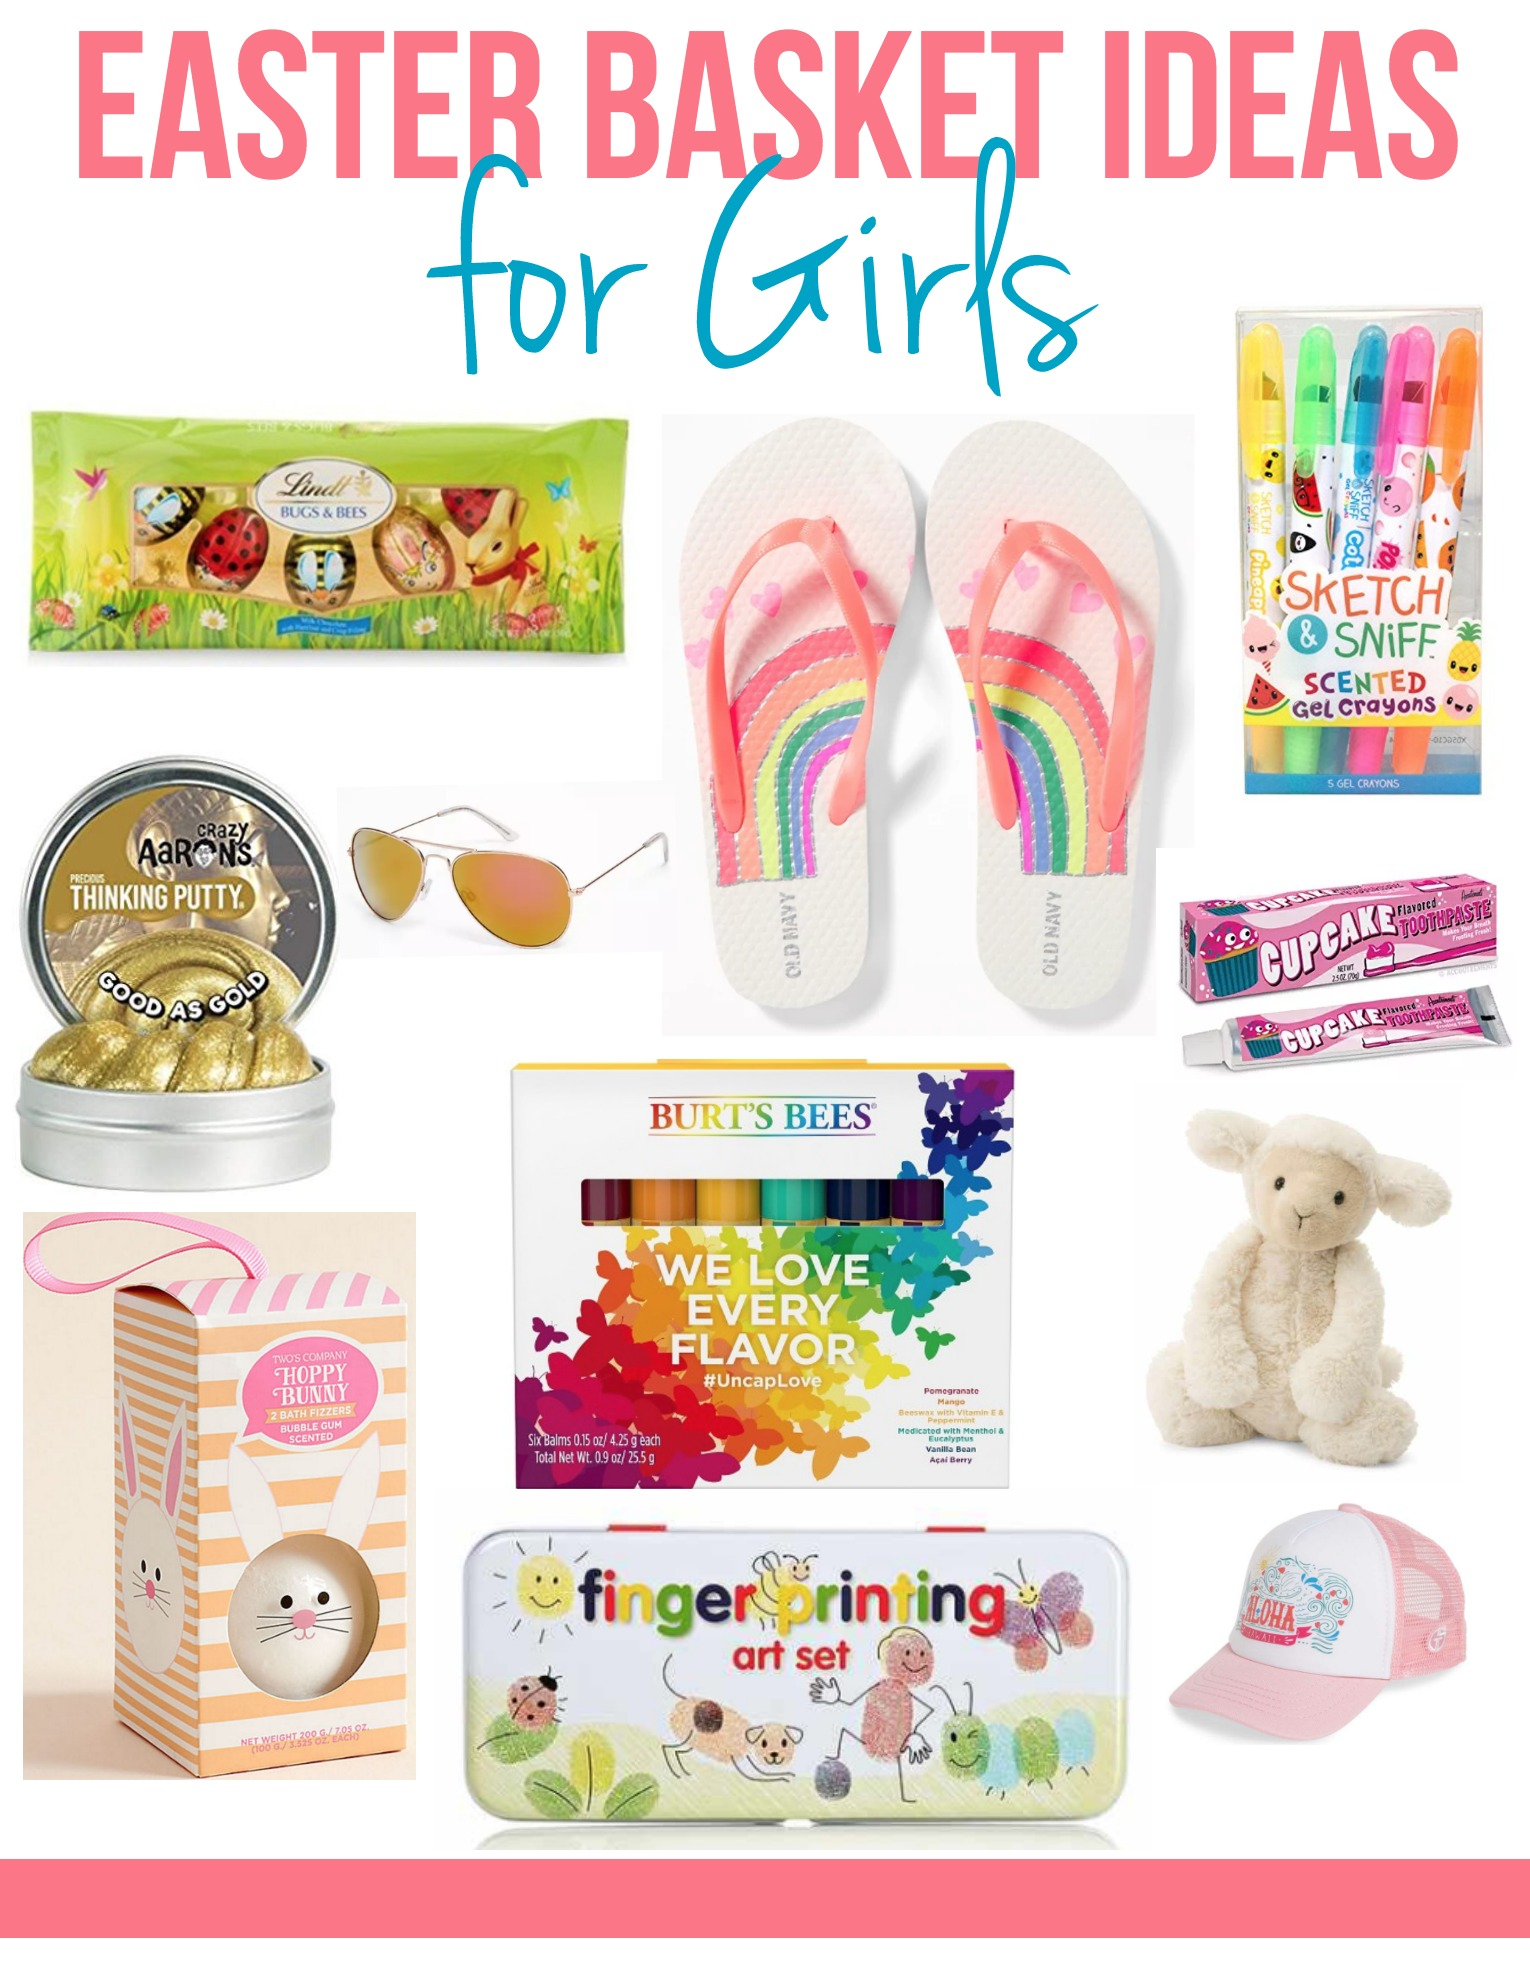 Easter basket ideas for girls archives my frugal adventures easter basket ideas for girls on myfrugaladventures cute little gift ideas for girls negle Choice Image